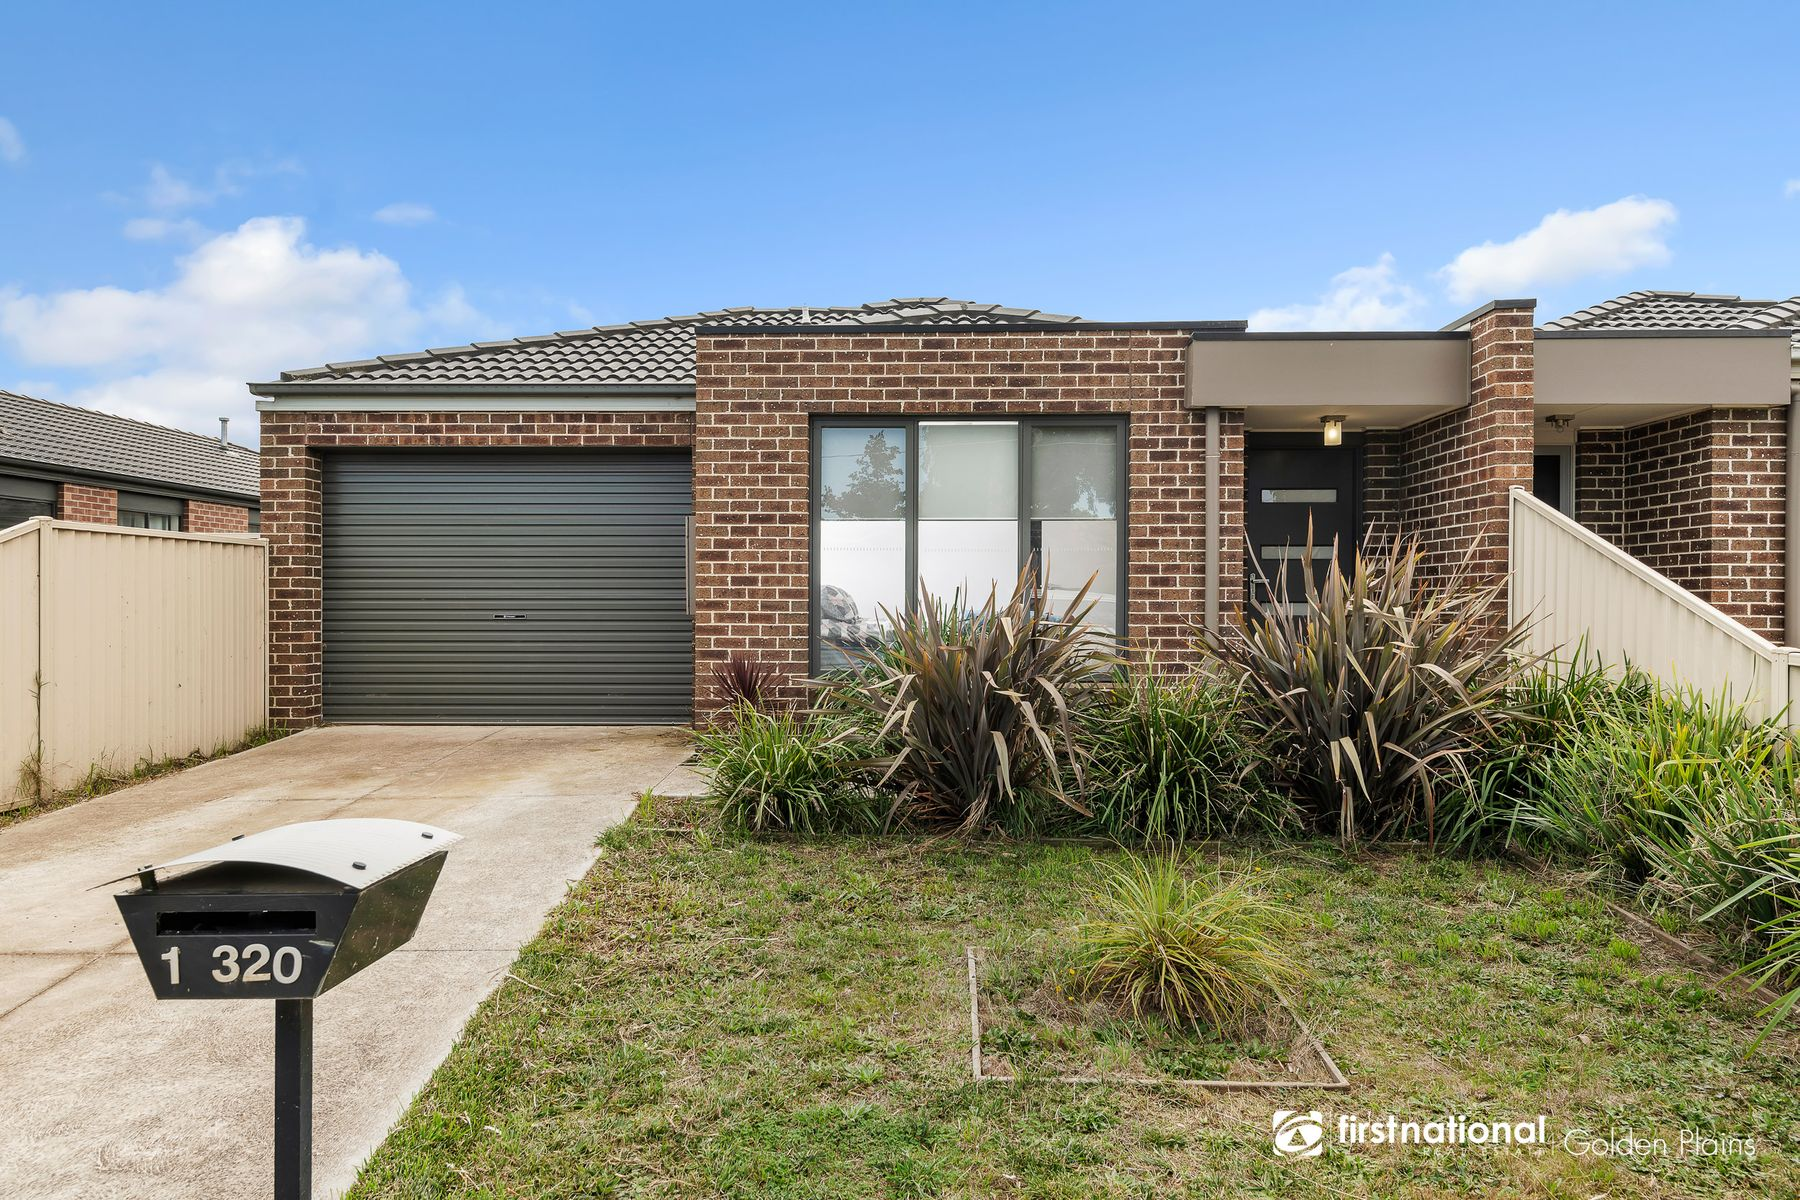 1/320 Greenhalghs Road, Delacombe, VIC 3356